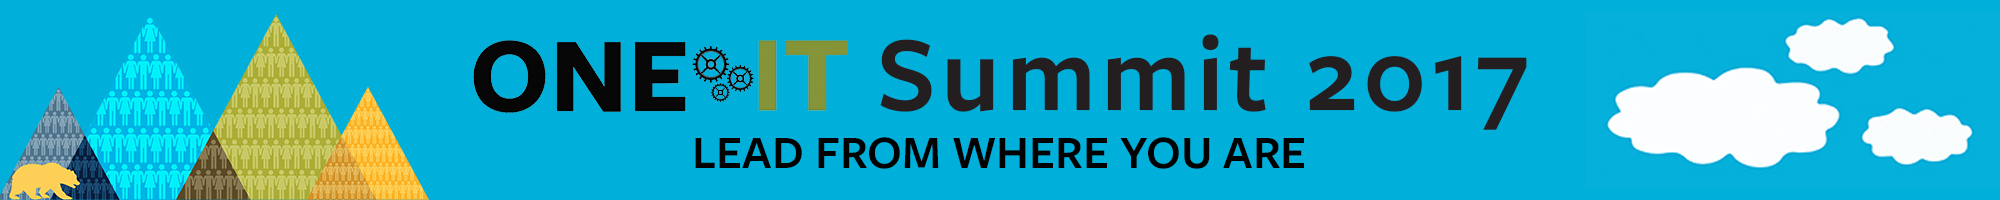 logo for IT Summit 2017